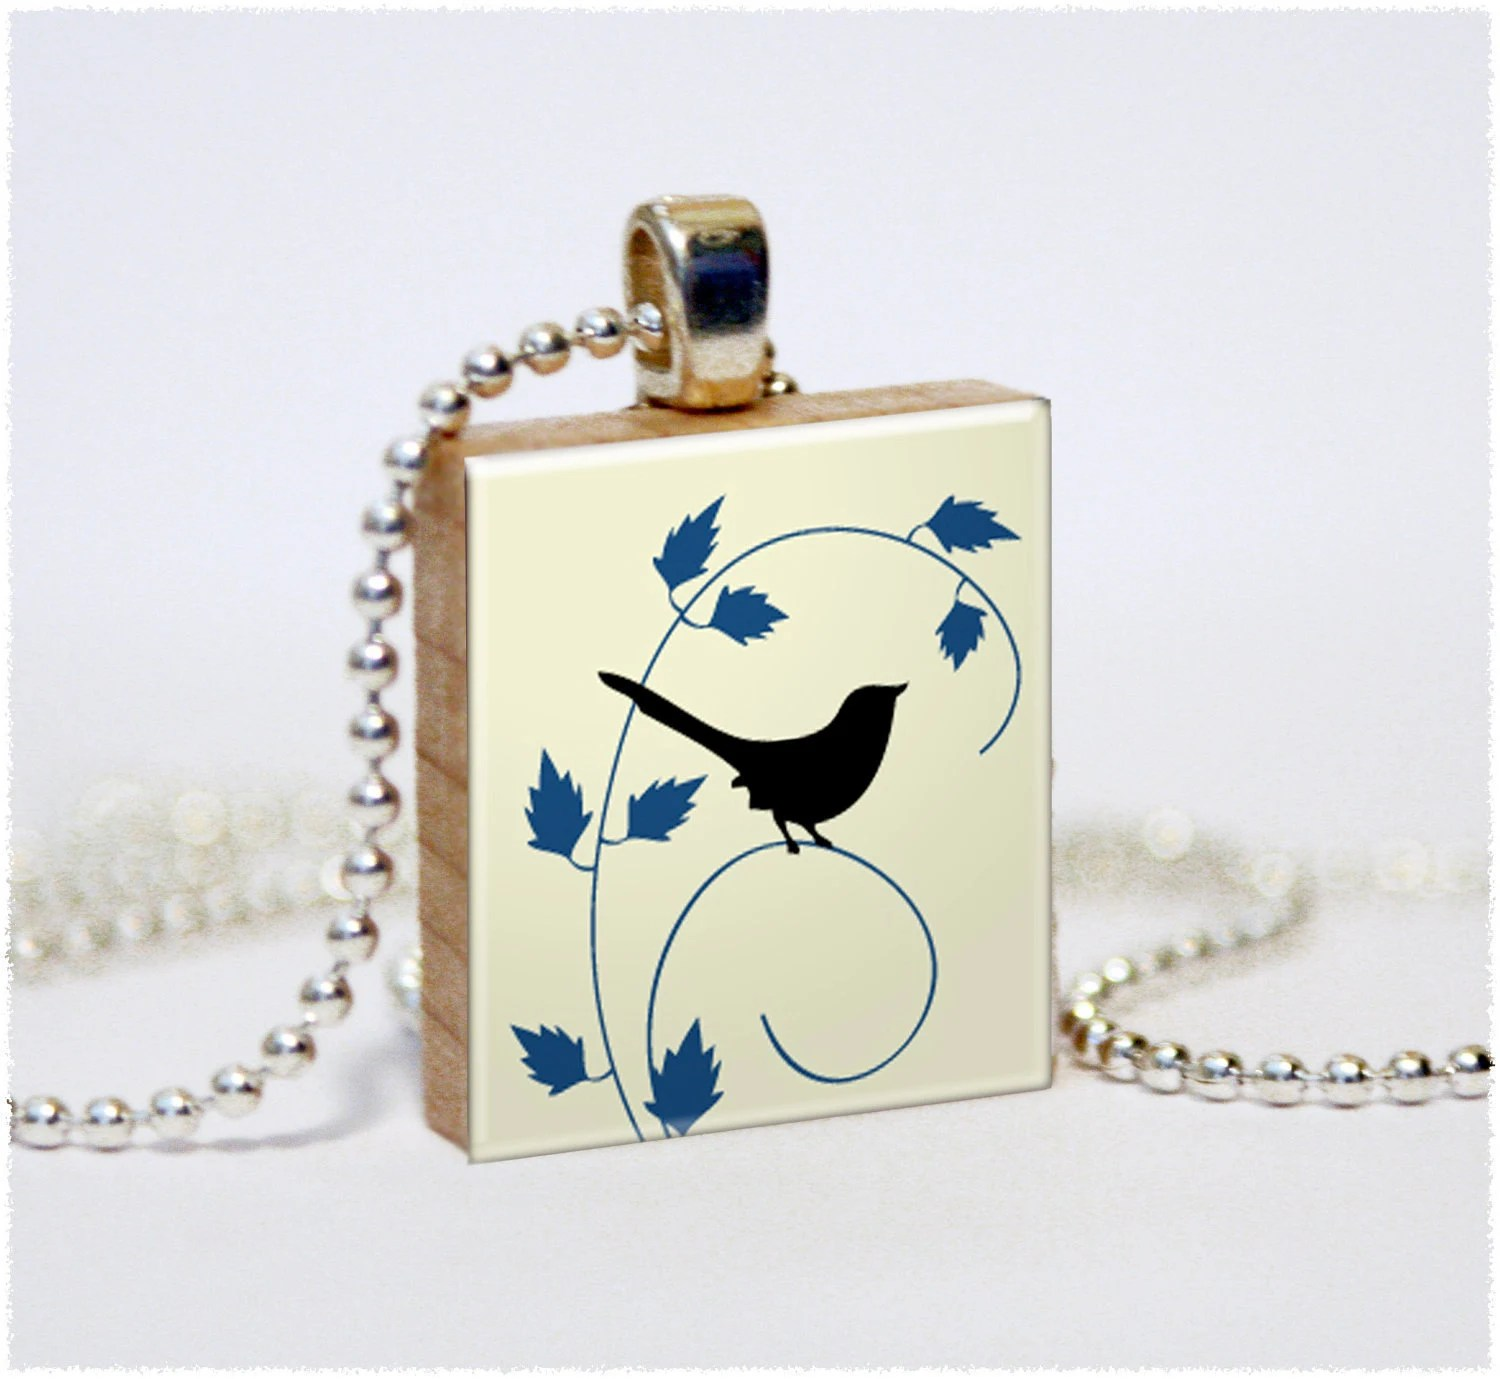 Little Birdy (Black and Blue)- A Unique Scrabble Game Tile Art Pendant- All Individually Handmade by The Trendy Trinket - TheTrendyTrinket